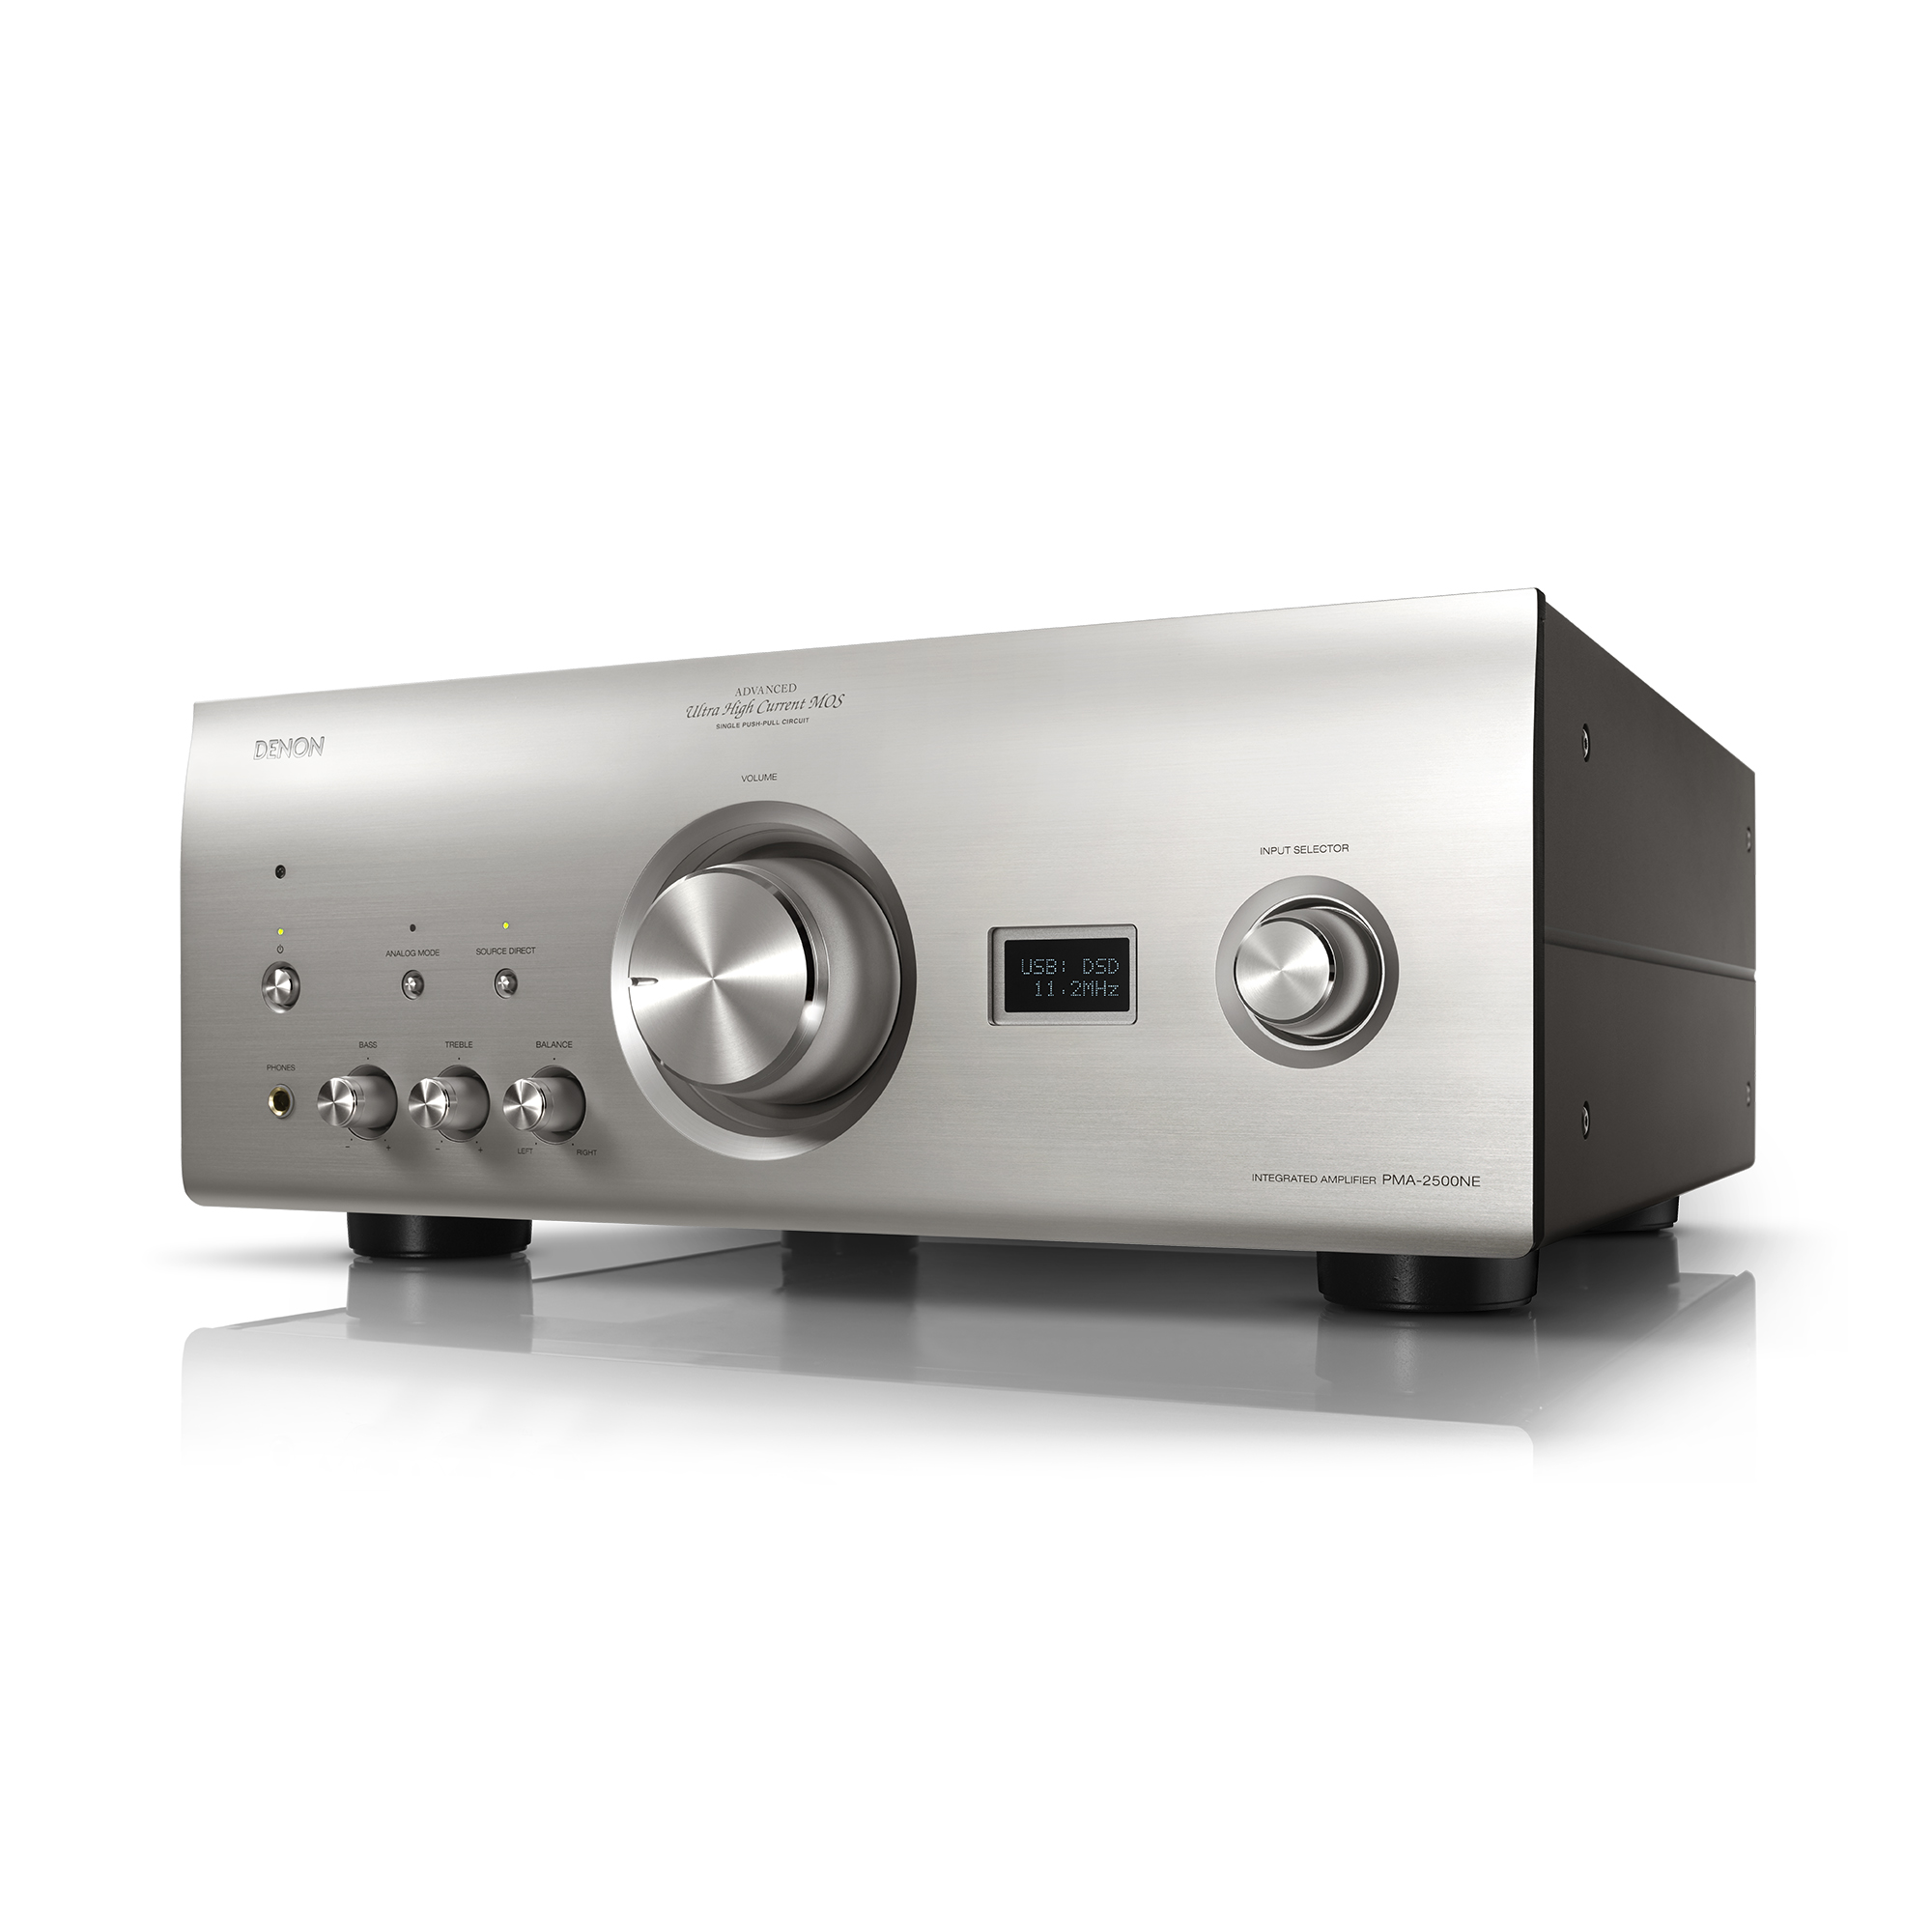 Denon Pma 2500ne 2x 160w Reference Integrated Amplifier Audioshop Circuits Related Keywords Suggestions Subwoofer Denpma2500neps 1 Home Stereo